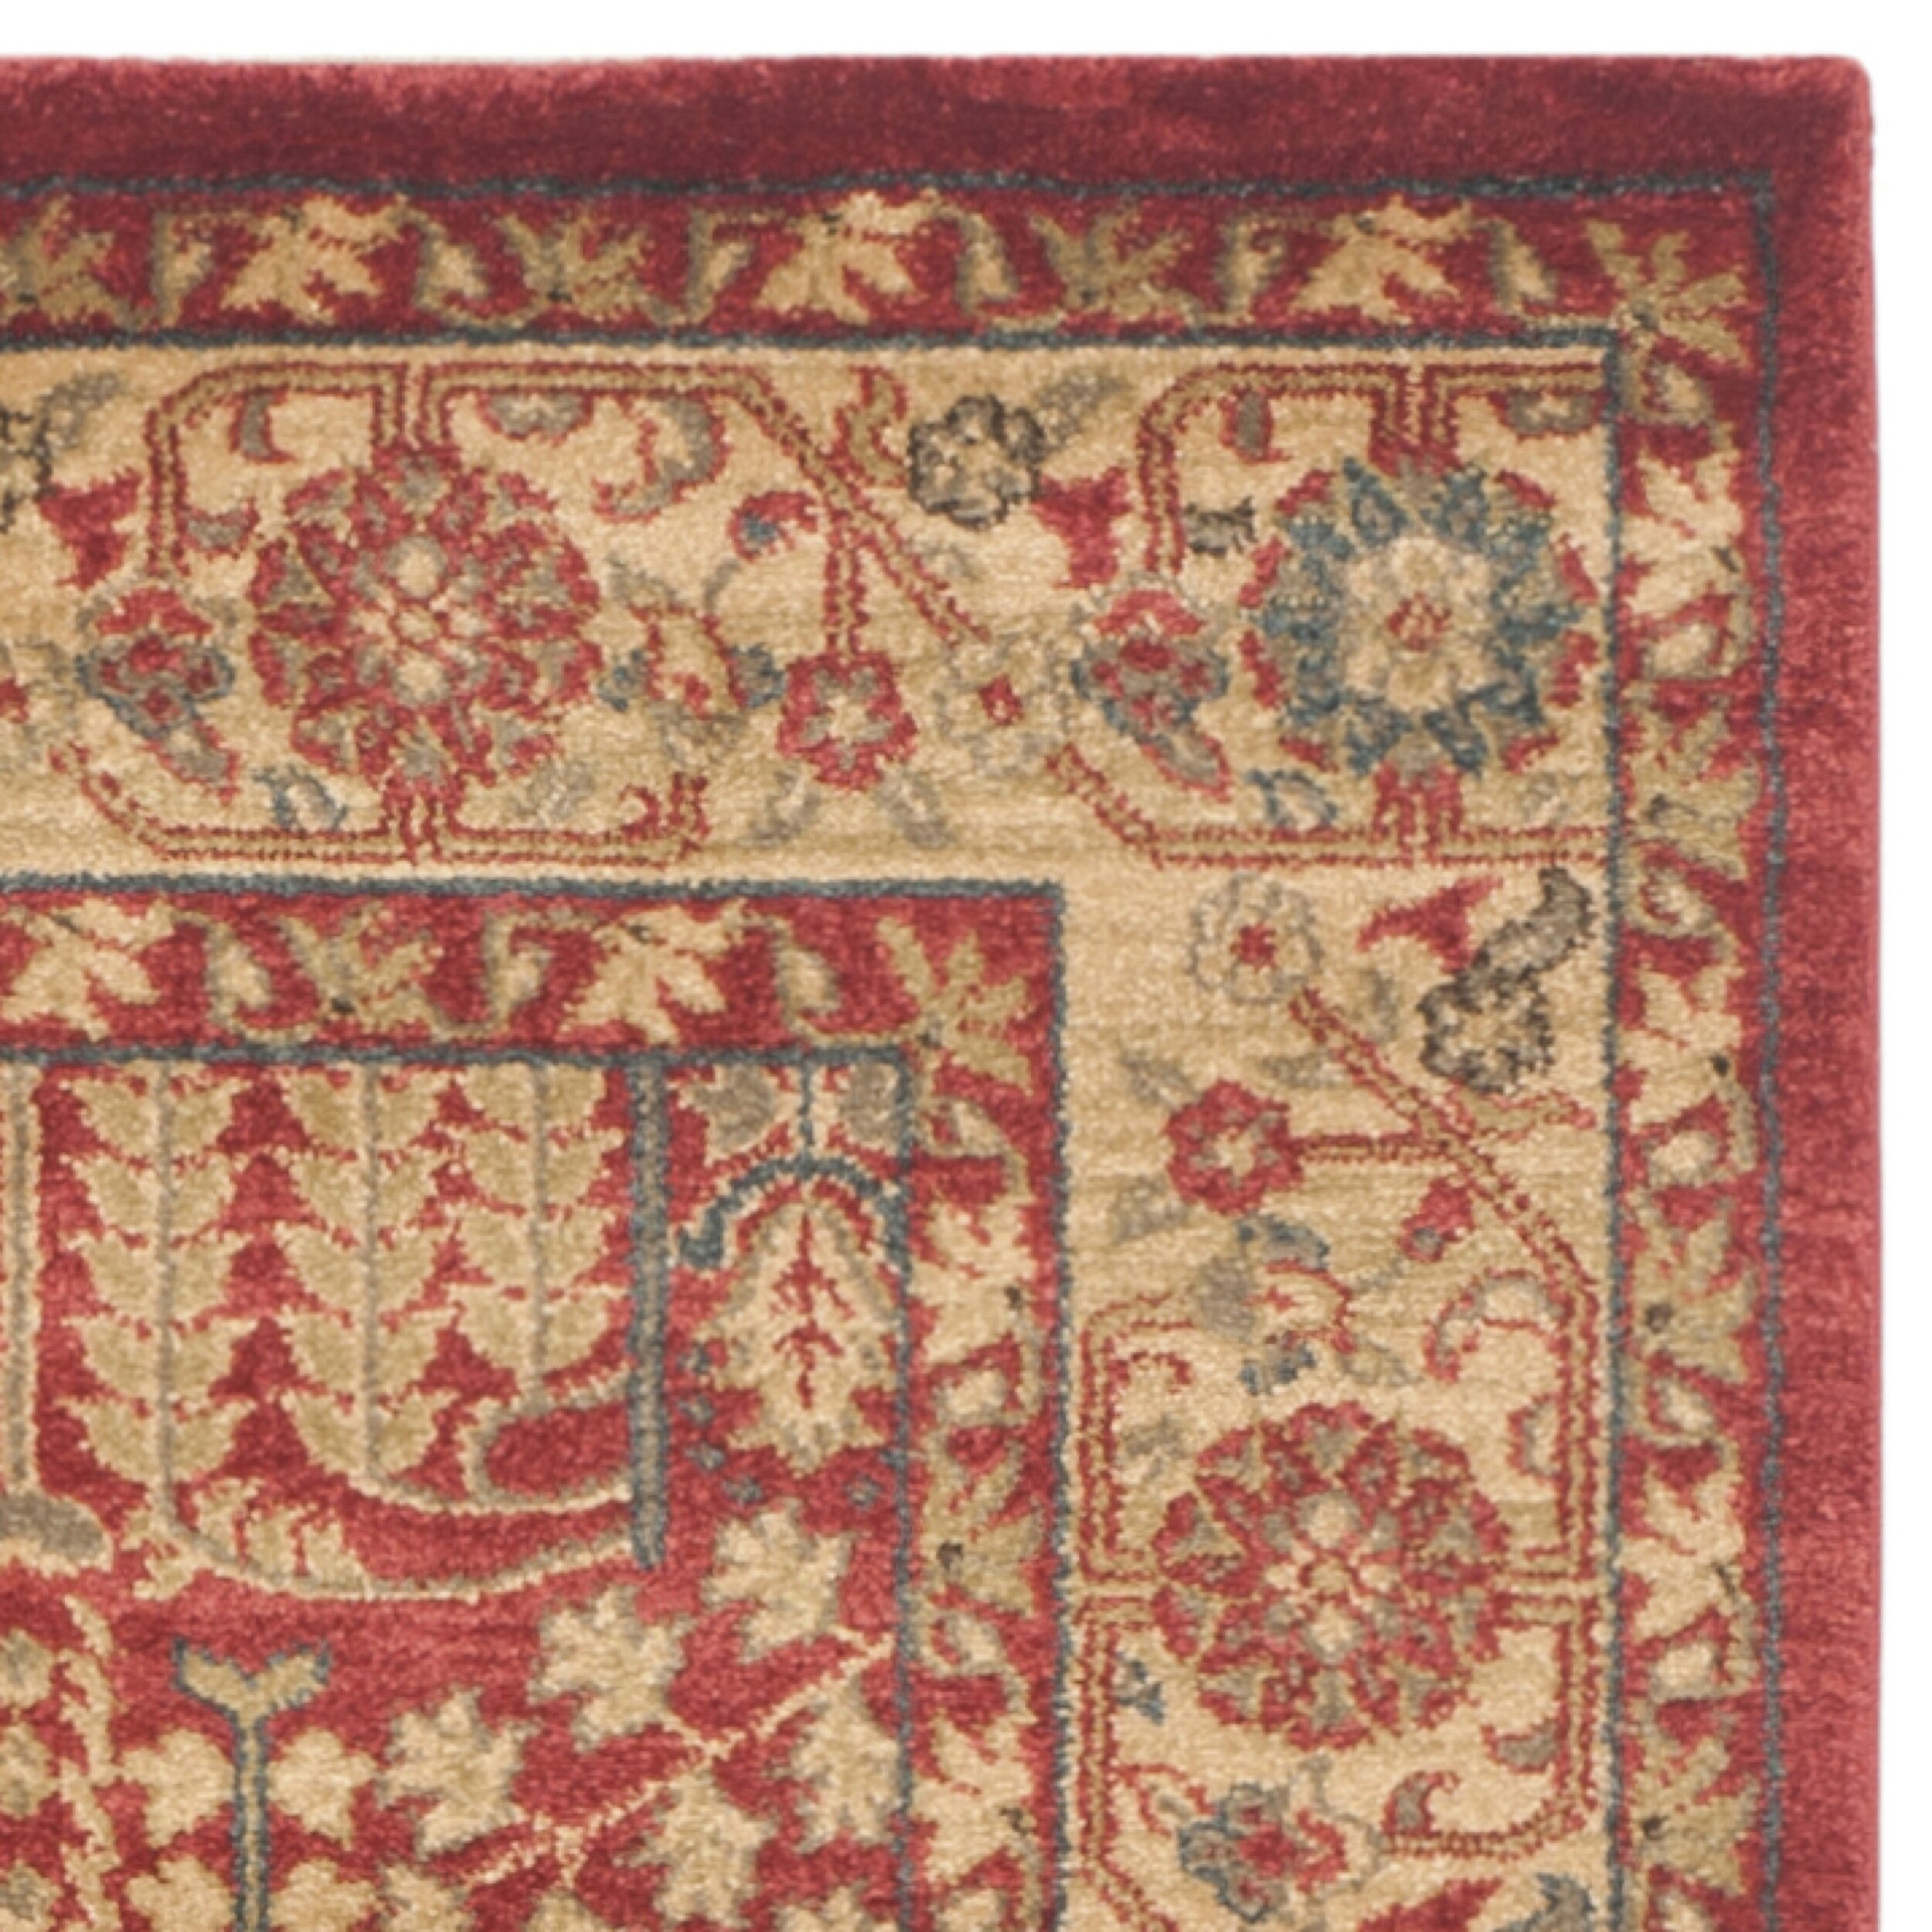 Safavieh Carpet: Safavieh Mahal Red/Natural Area Rug & Reviews